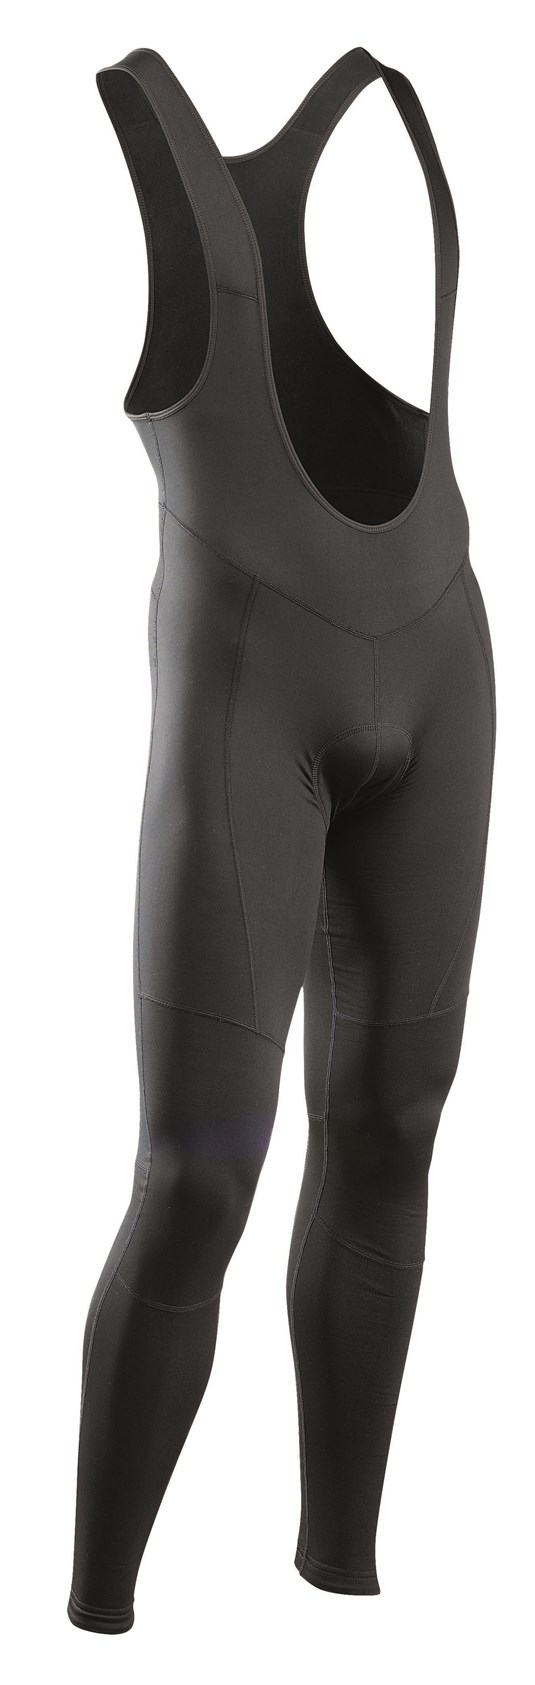 AW 18-19 Force 2 Bibtights - Mid Season